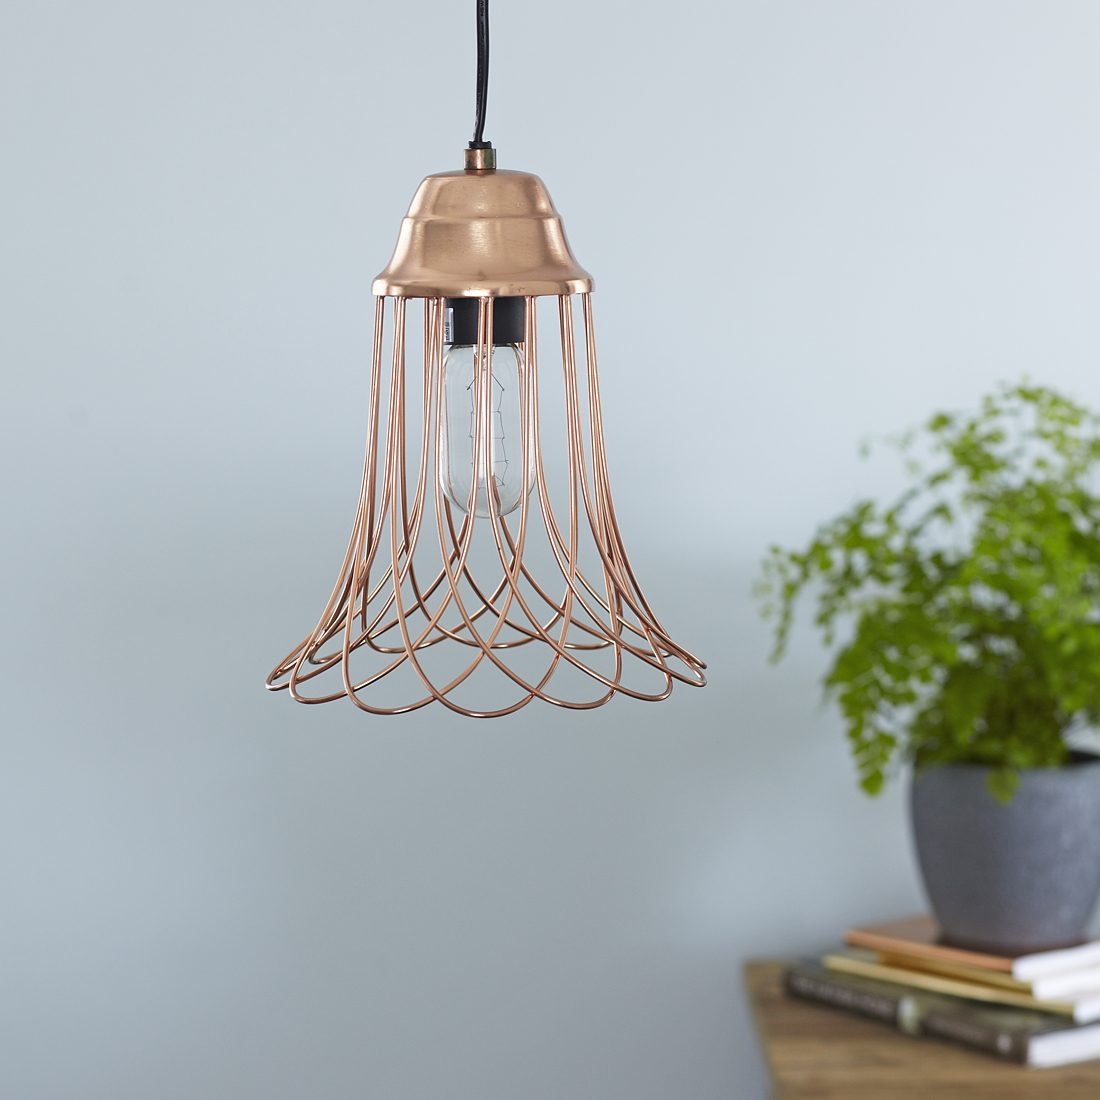 Install Pendant Light How To Install Pendant Light Fixture Uk